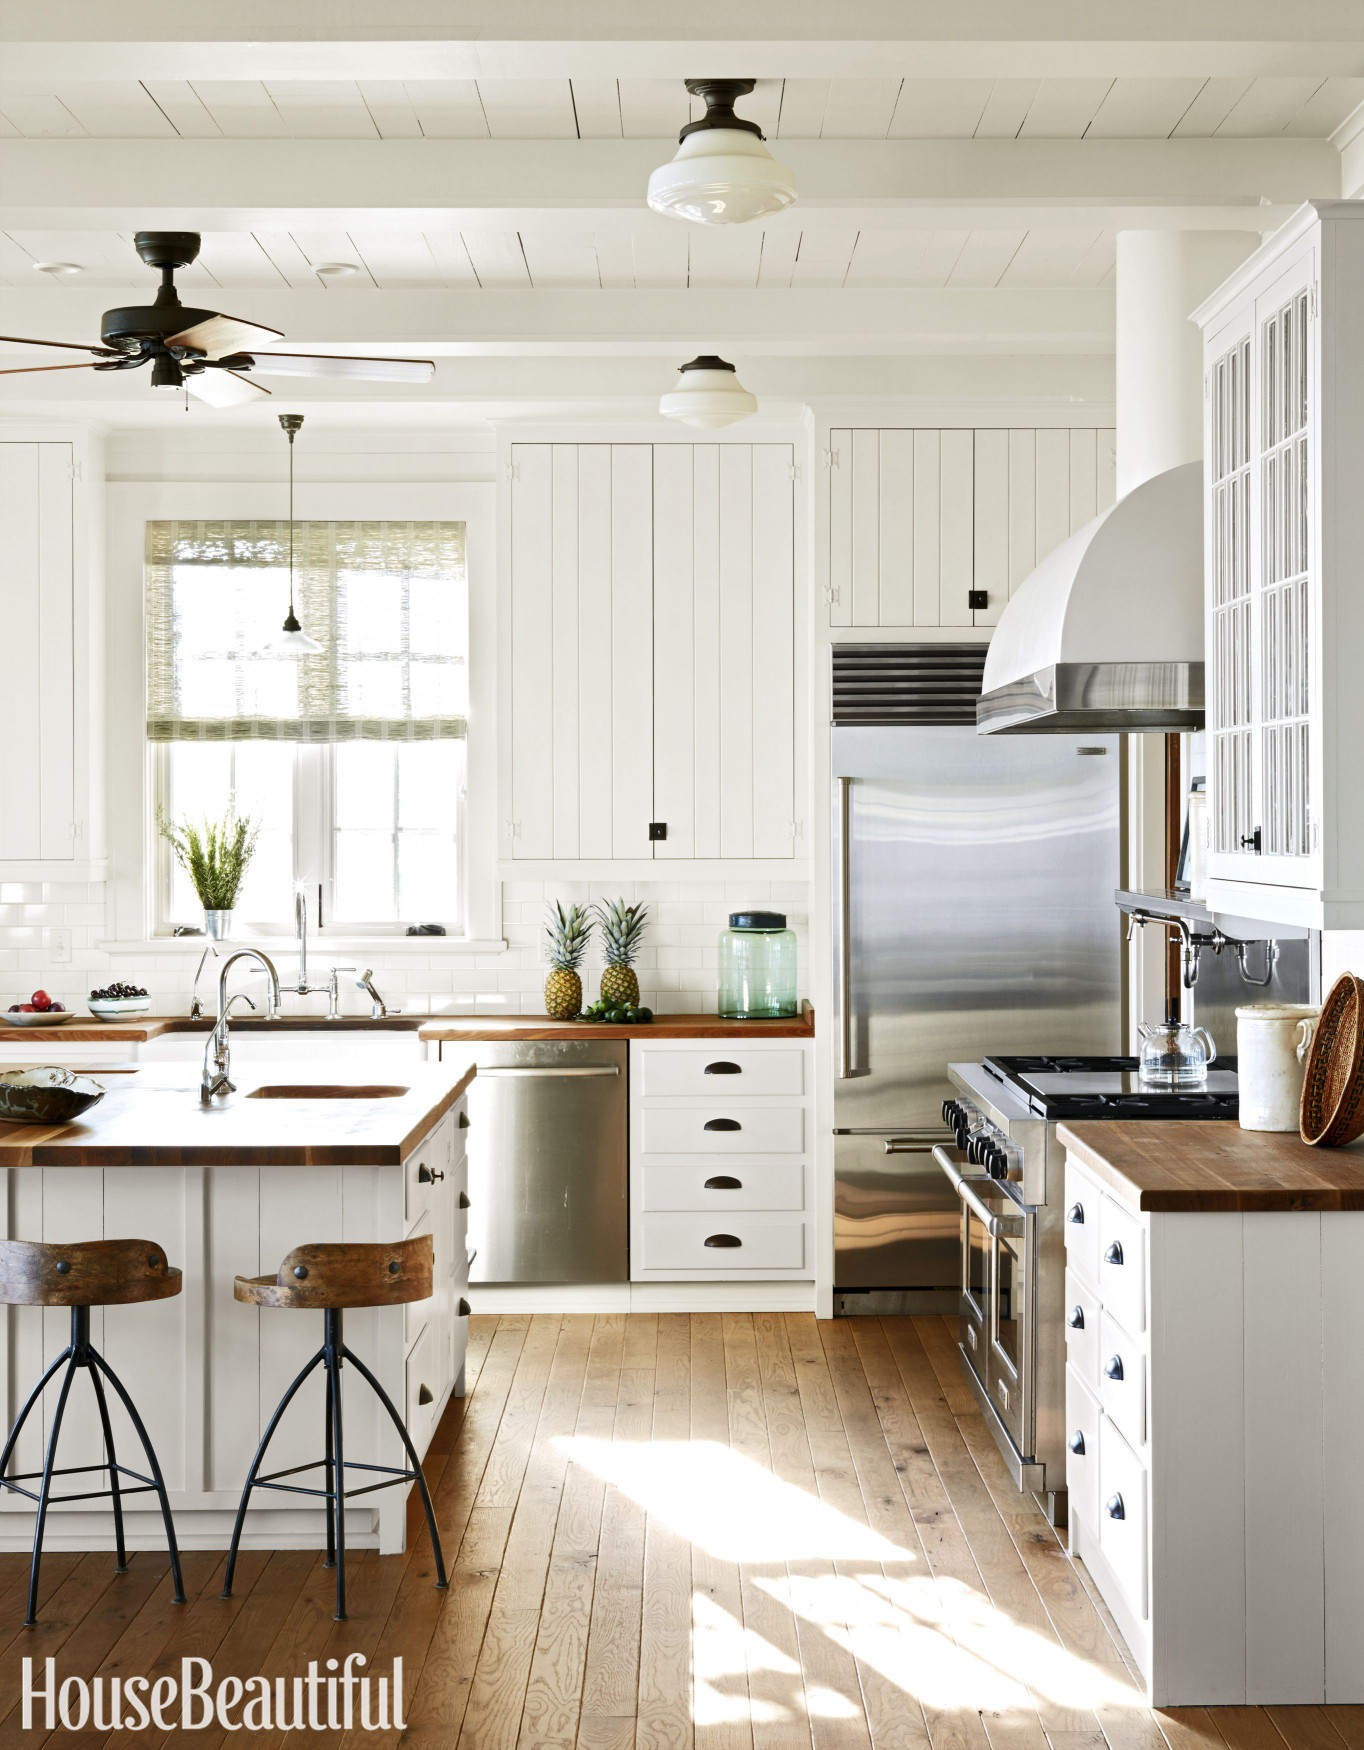 White Kitchen Cabinet Awesome 17 White Kitchen Cabinet Ideas Paint Colors and Hardware for